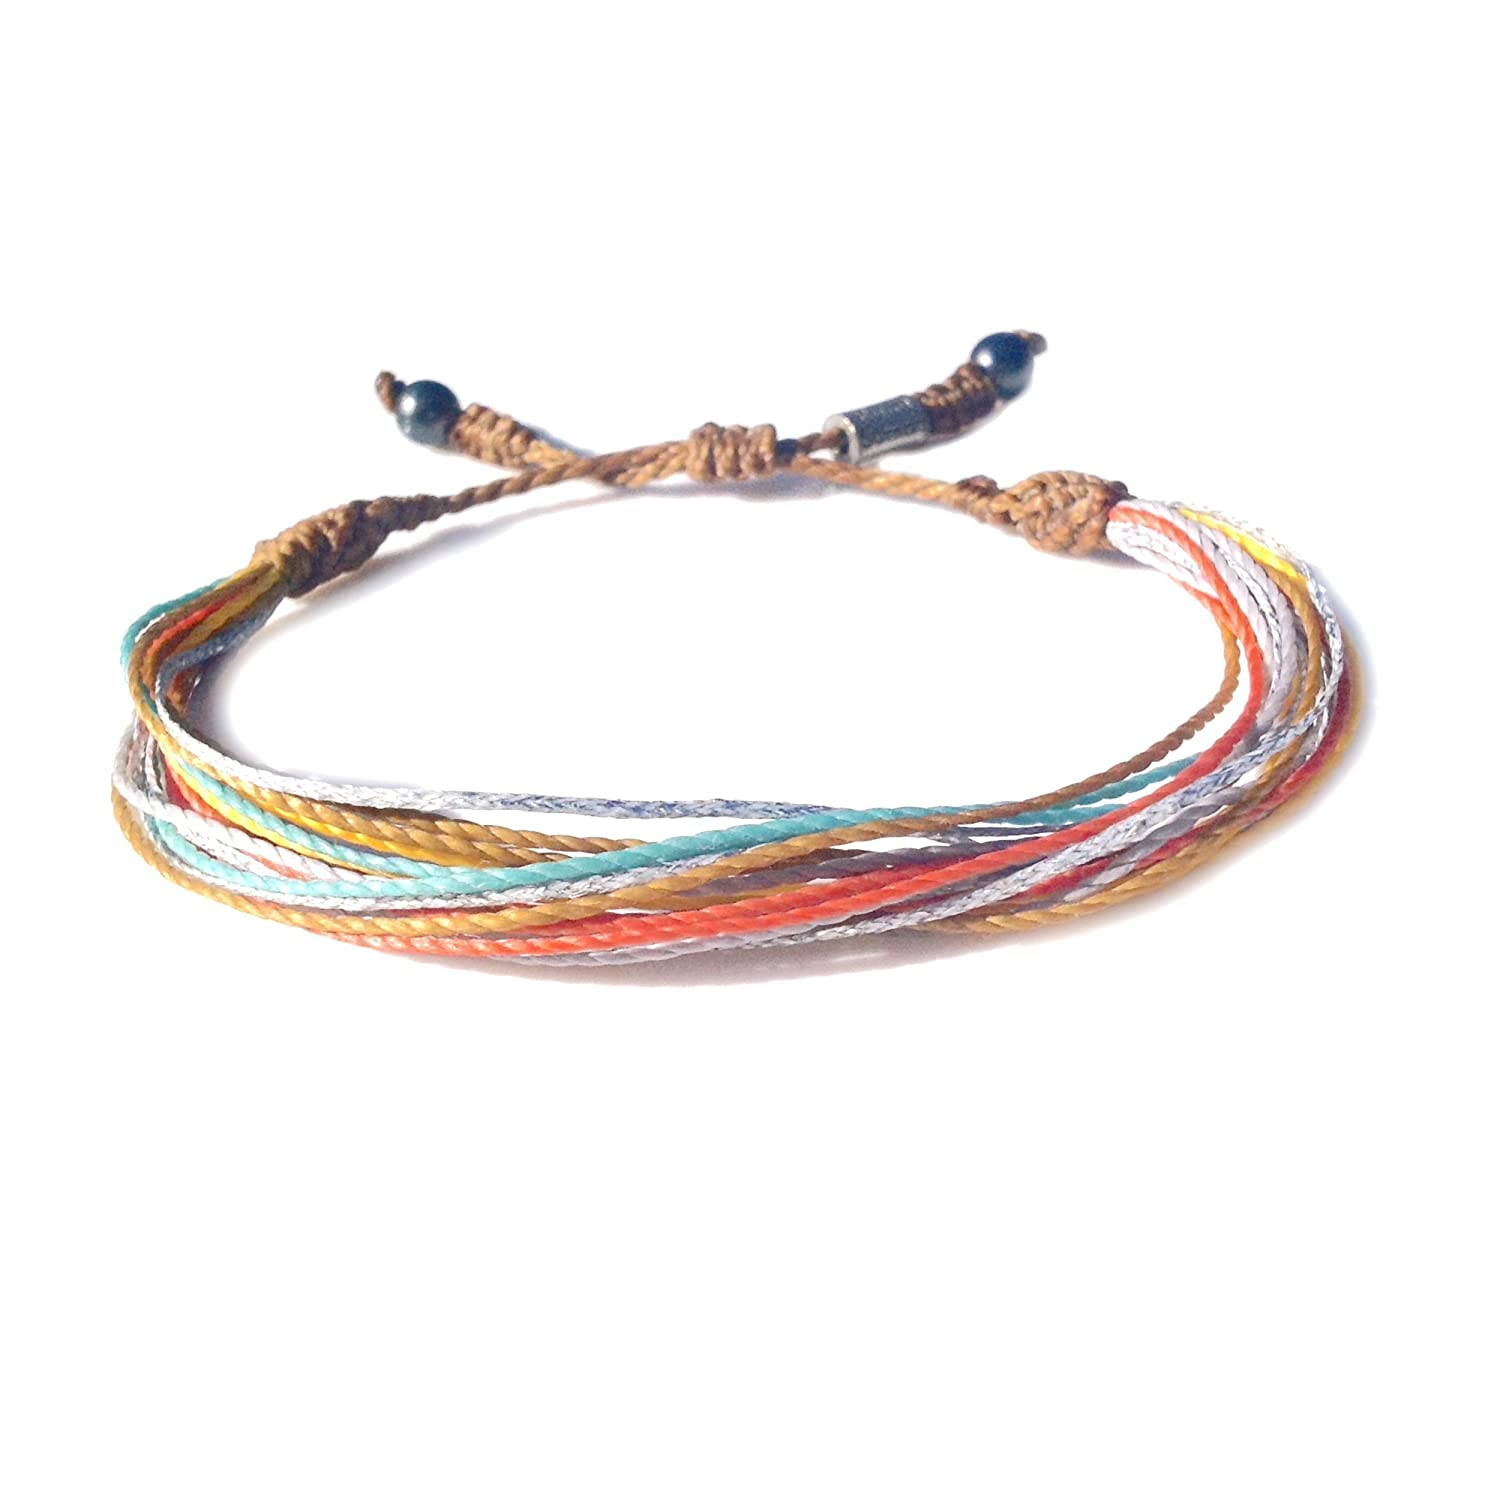 RUMI SUMAQ Colorful Spring String Bracelet with Hematite Stones Easter Basket Gift Handmade Knotted Macrame Pull Cord Friendship Bracelet